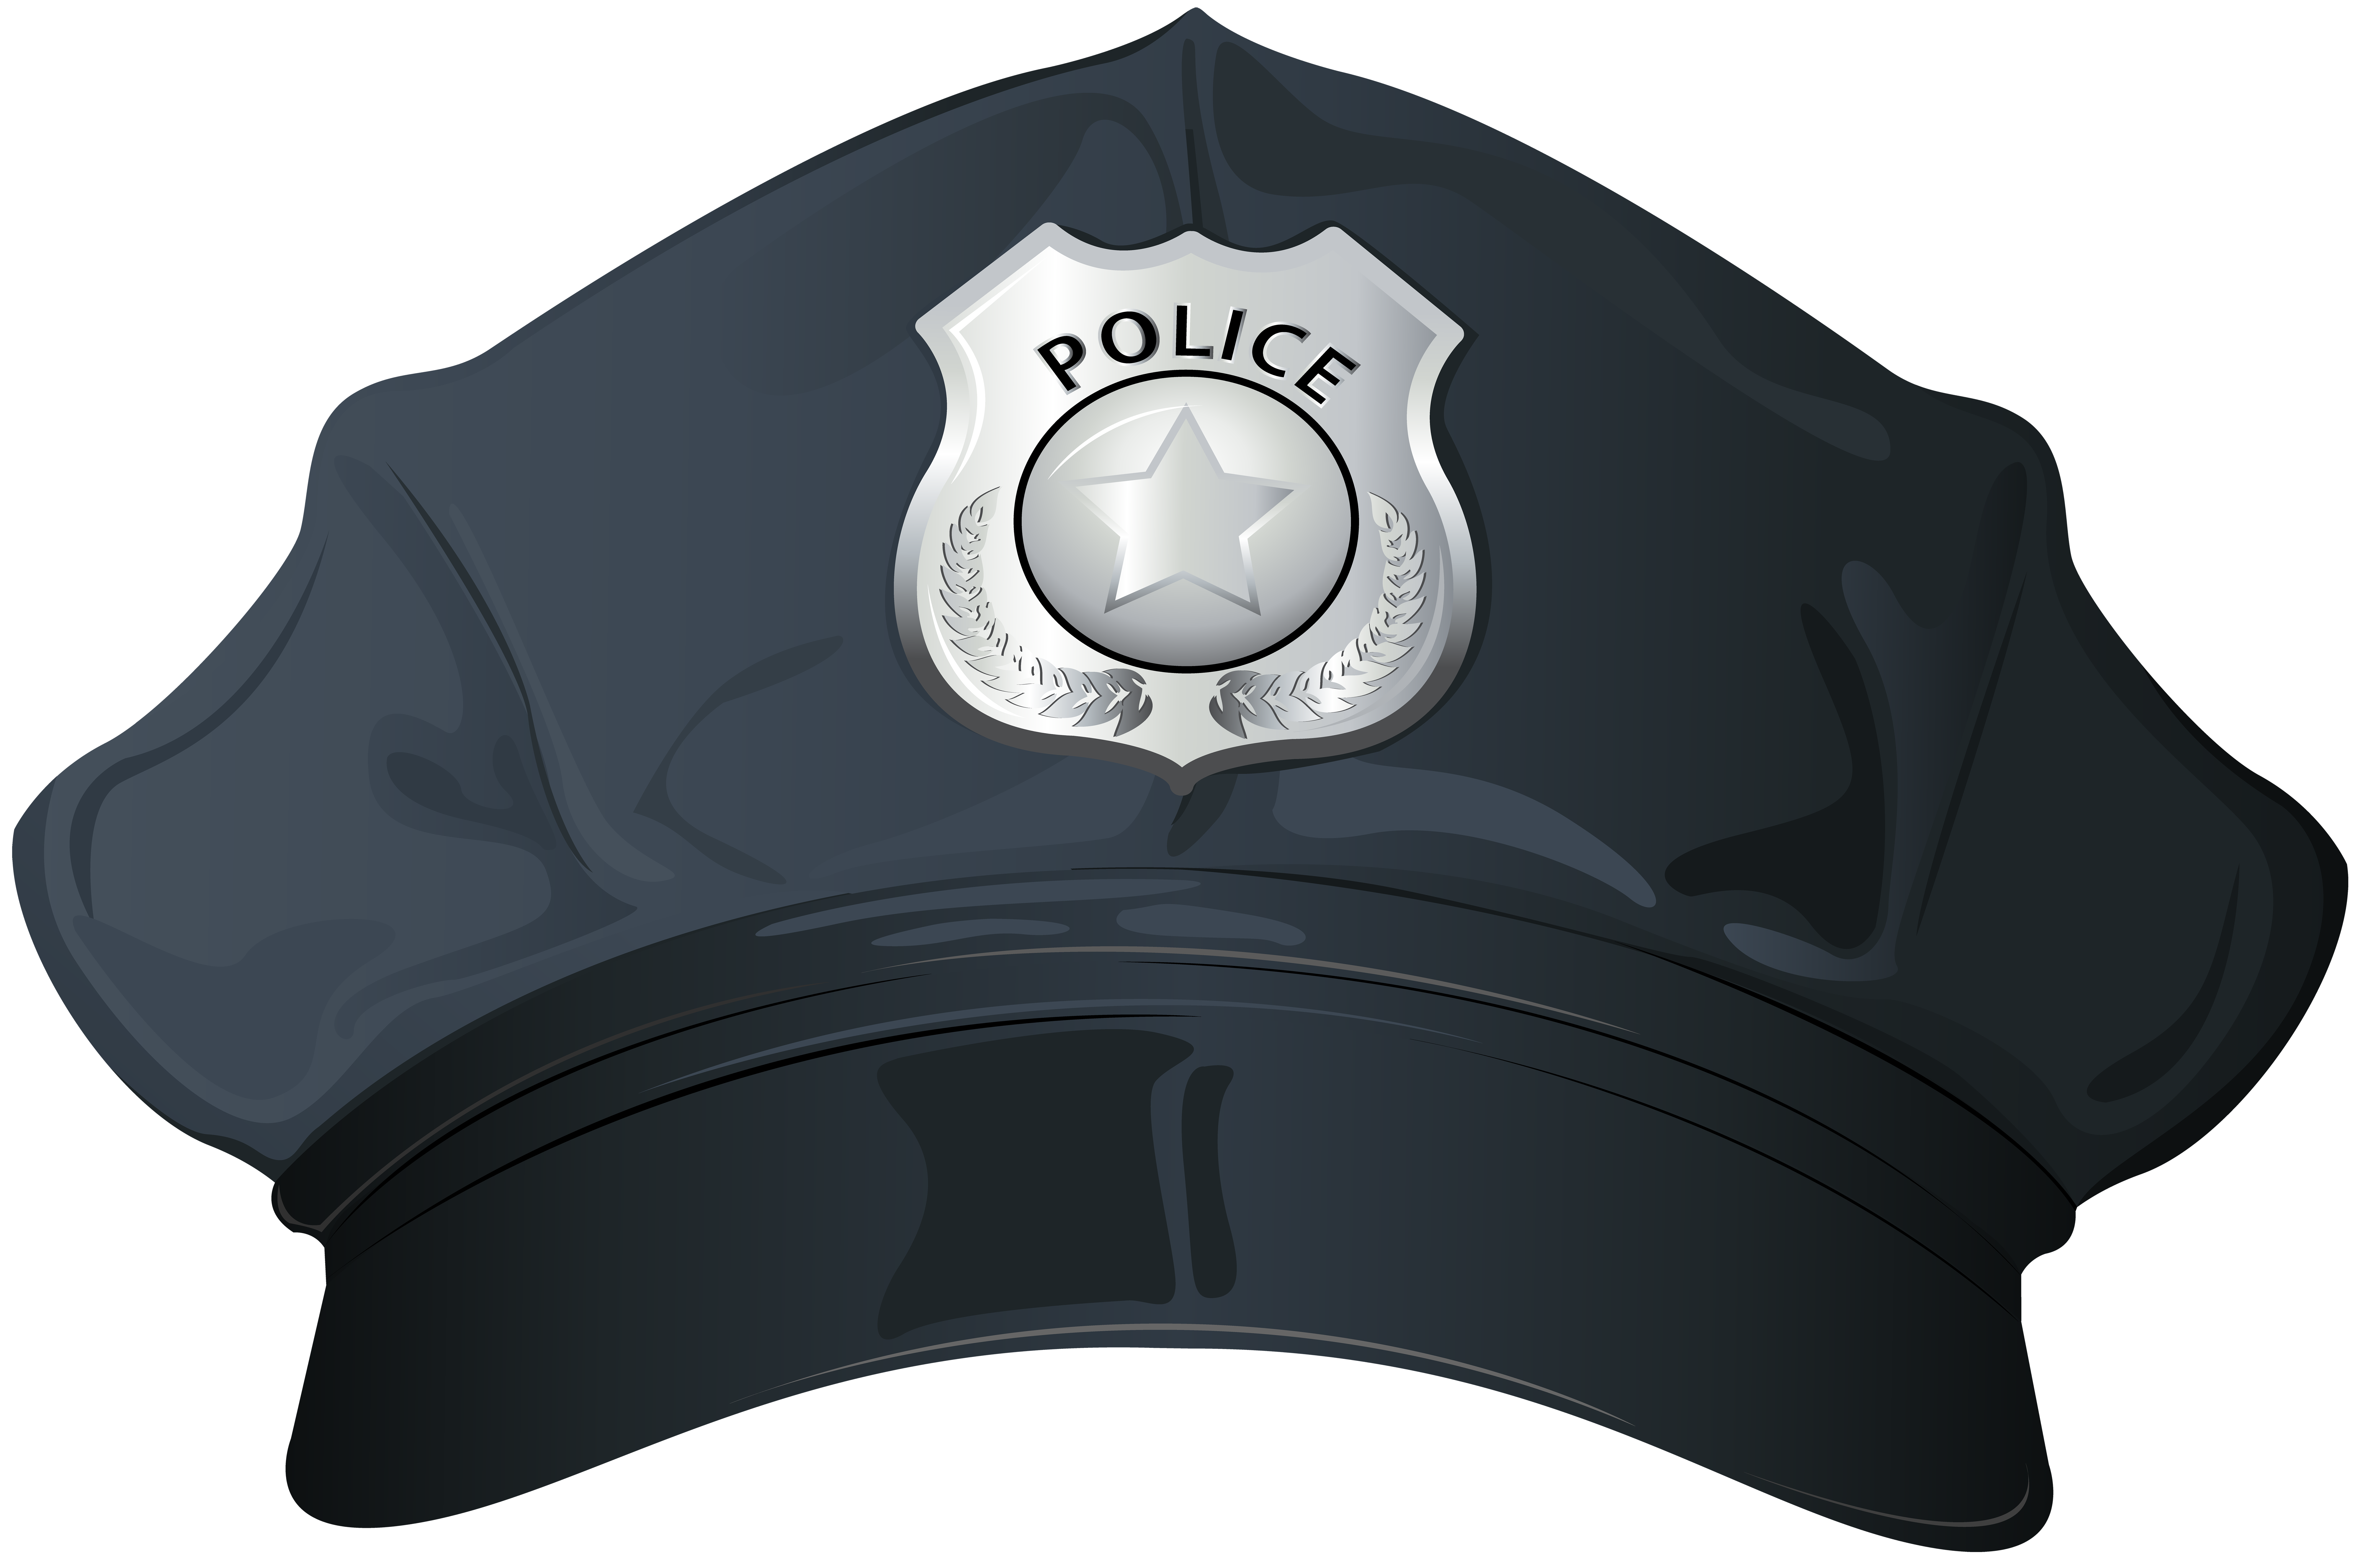 Poklice Png - Police Hat PNG Clip Art | Gallery Yopriceville - High-Quality ...